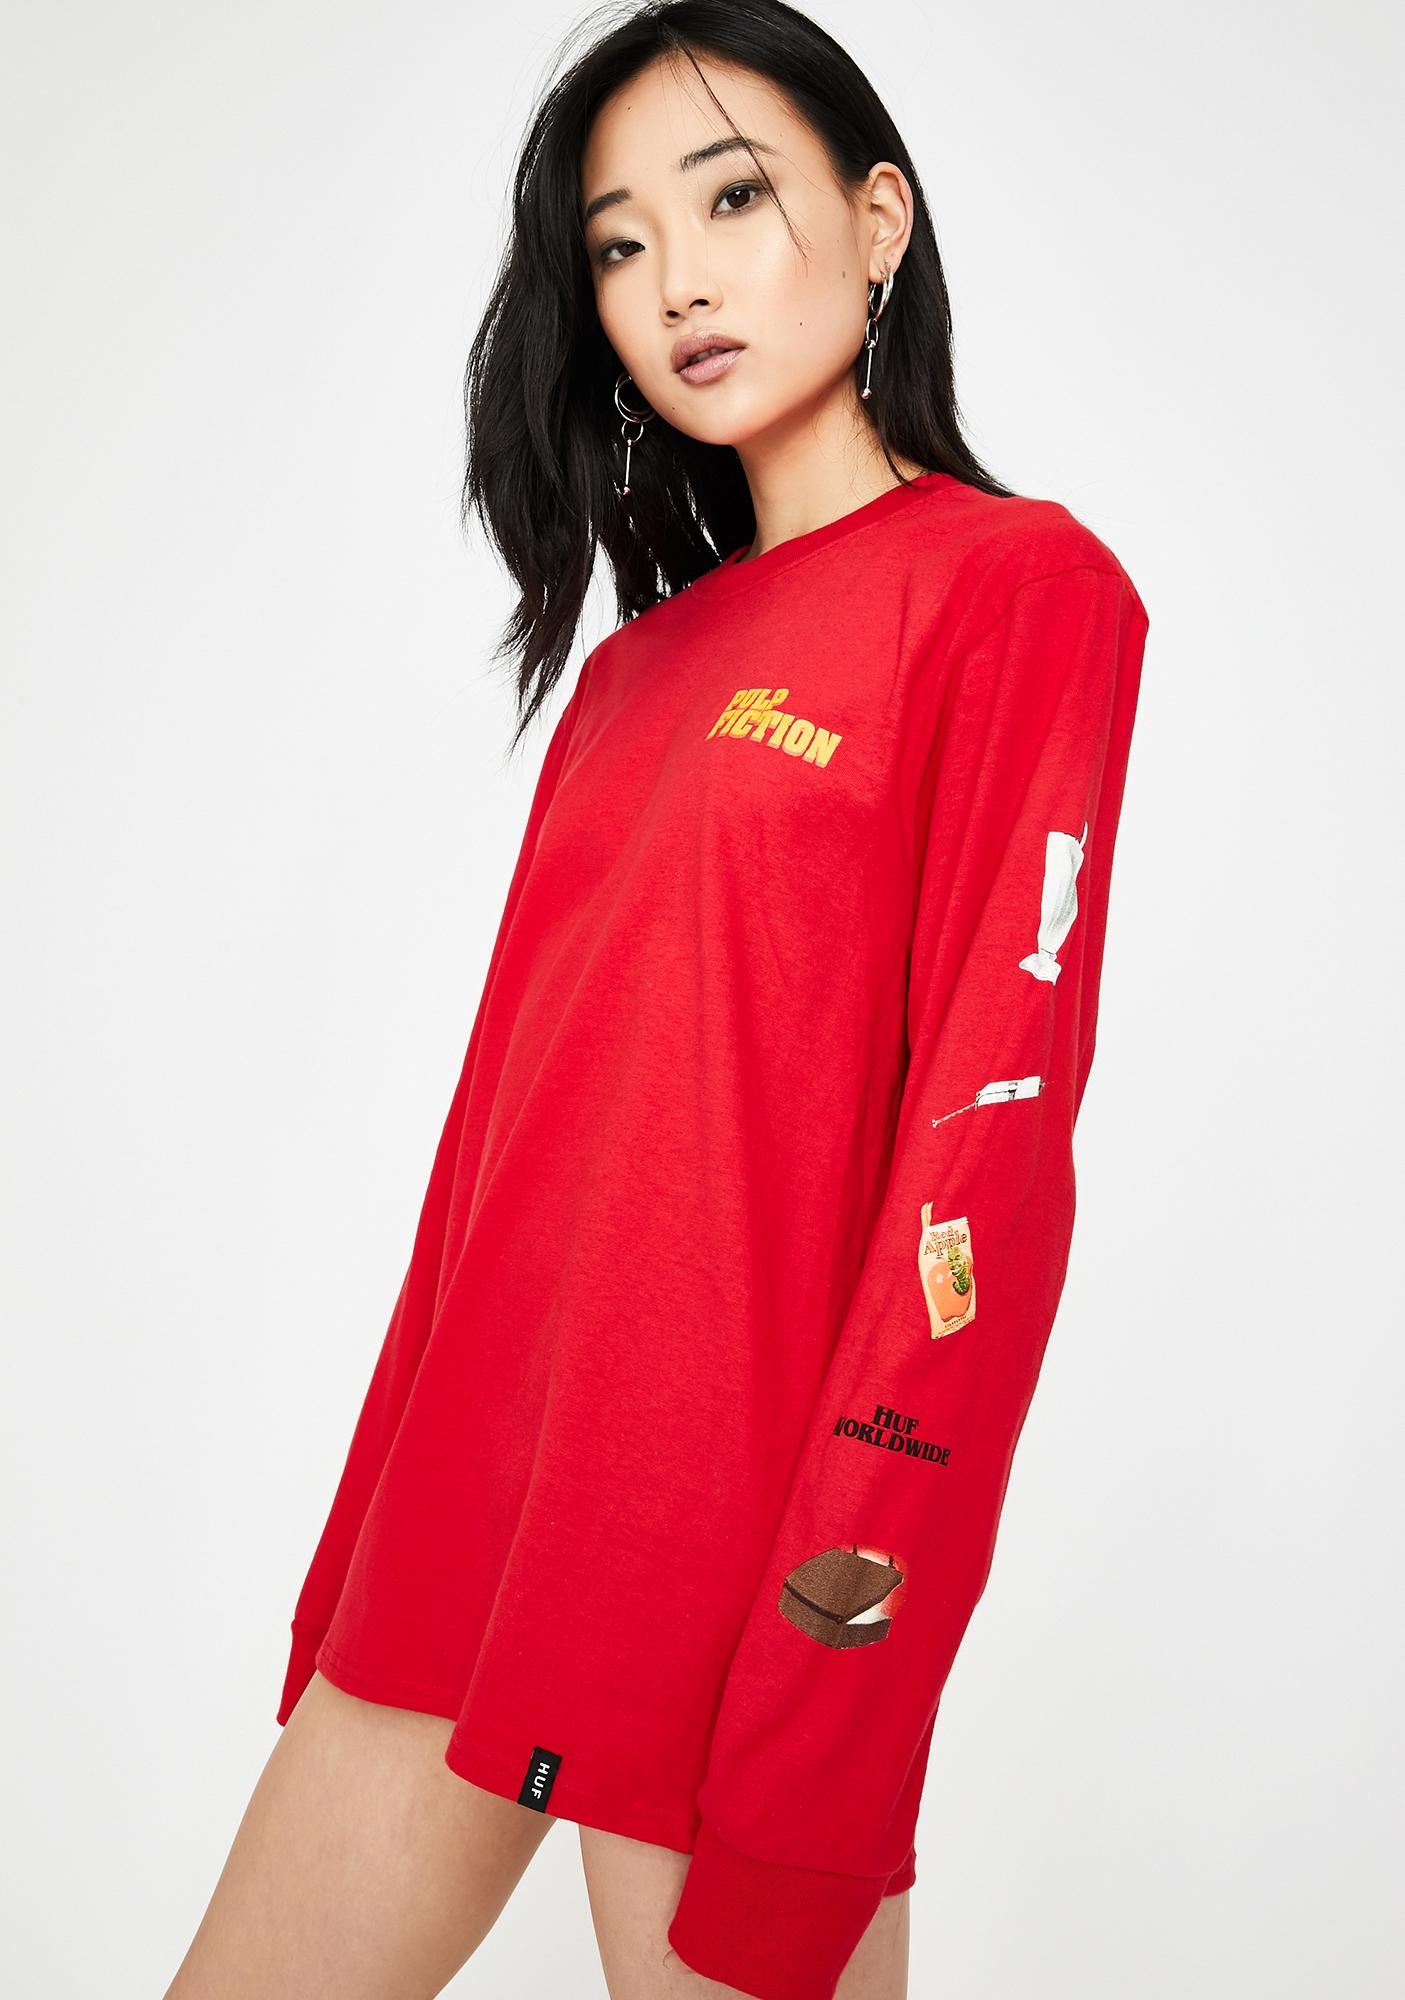 HUF x Pulp Fiction Props Long Sleeve Tee